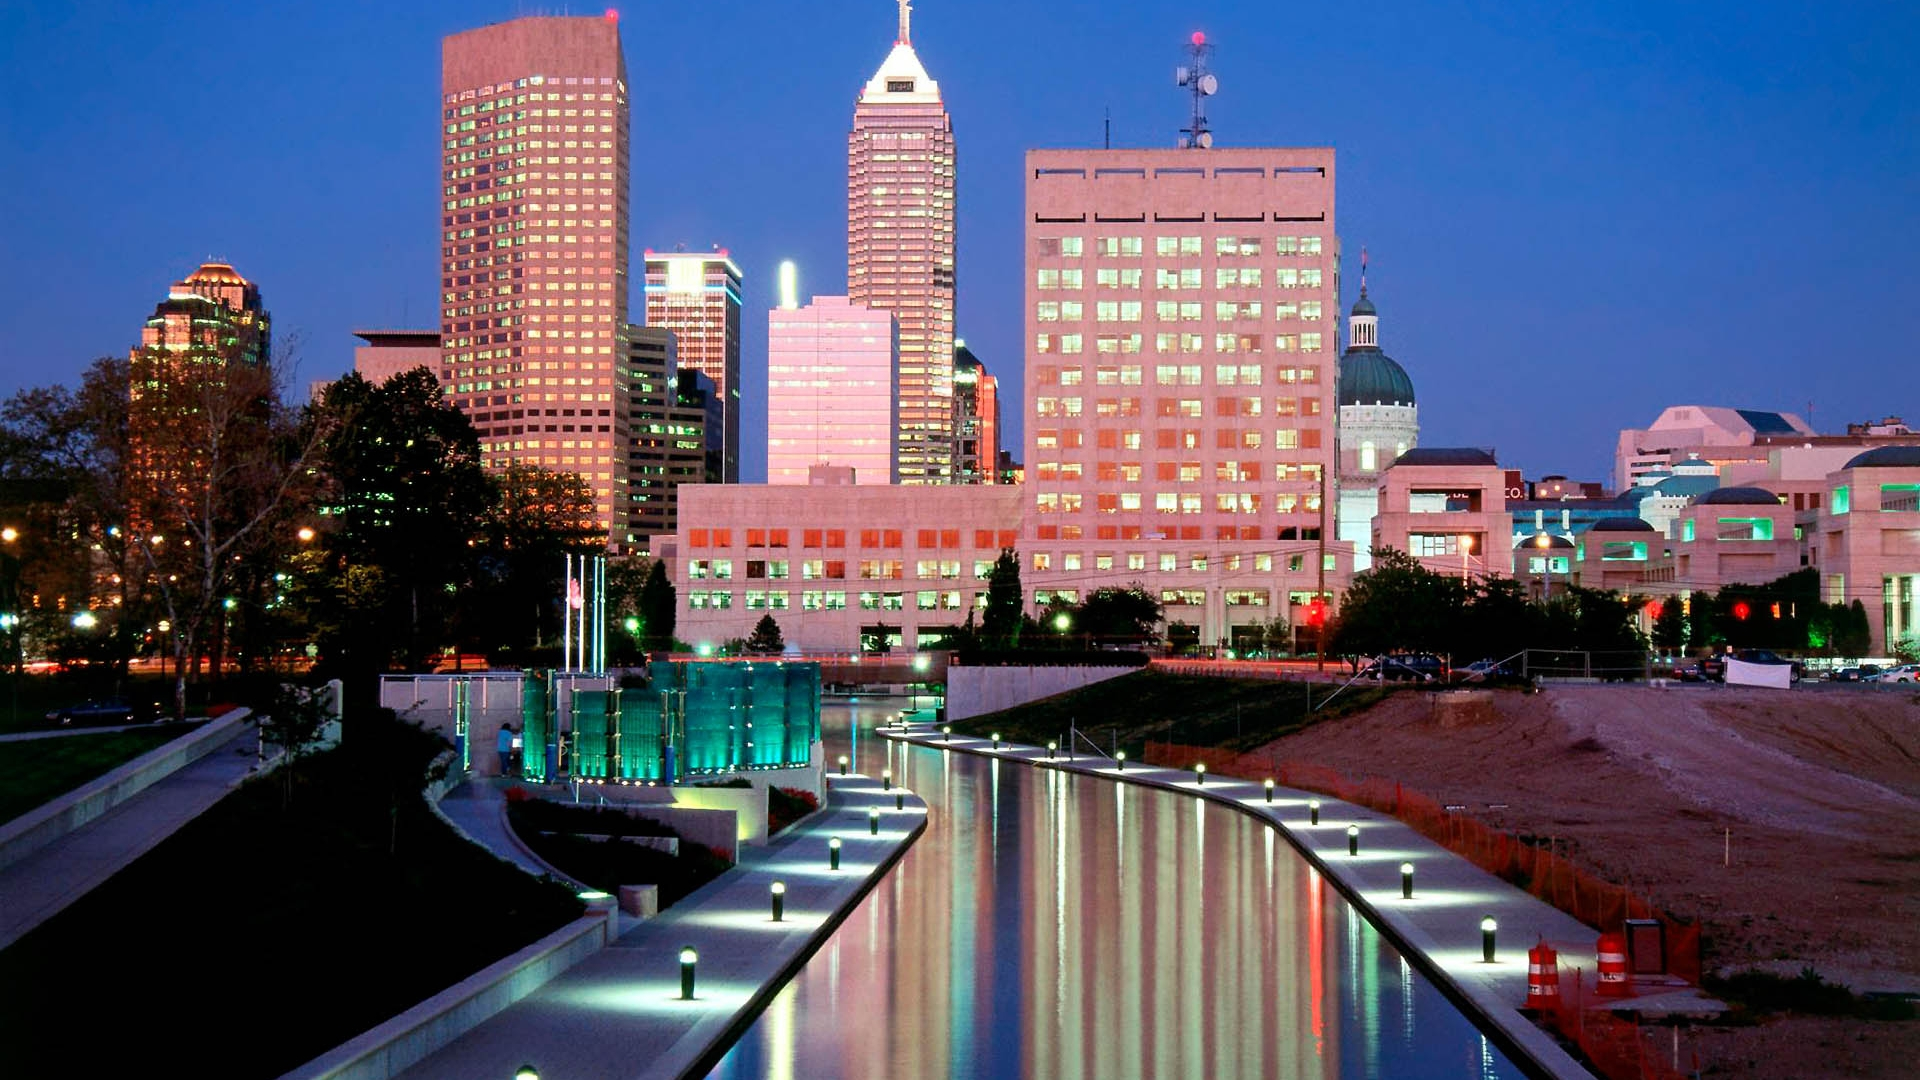 Indianapolis Skyline at Night | CITIES